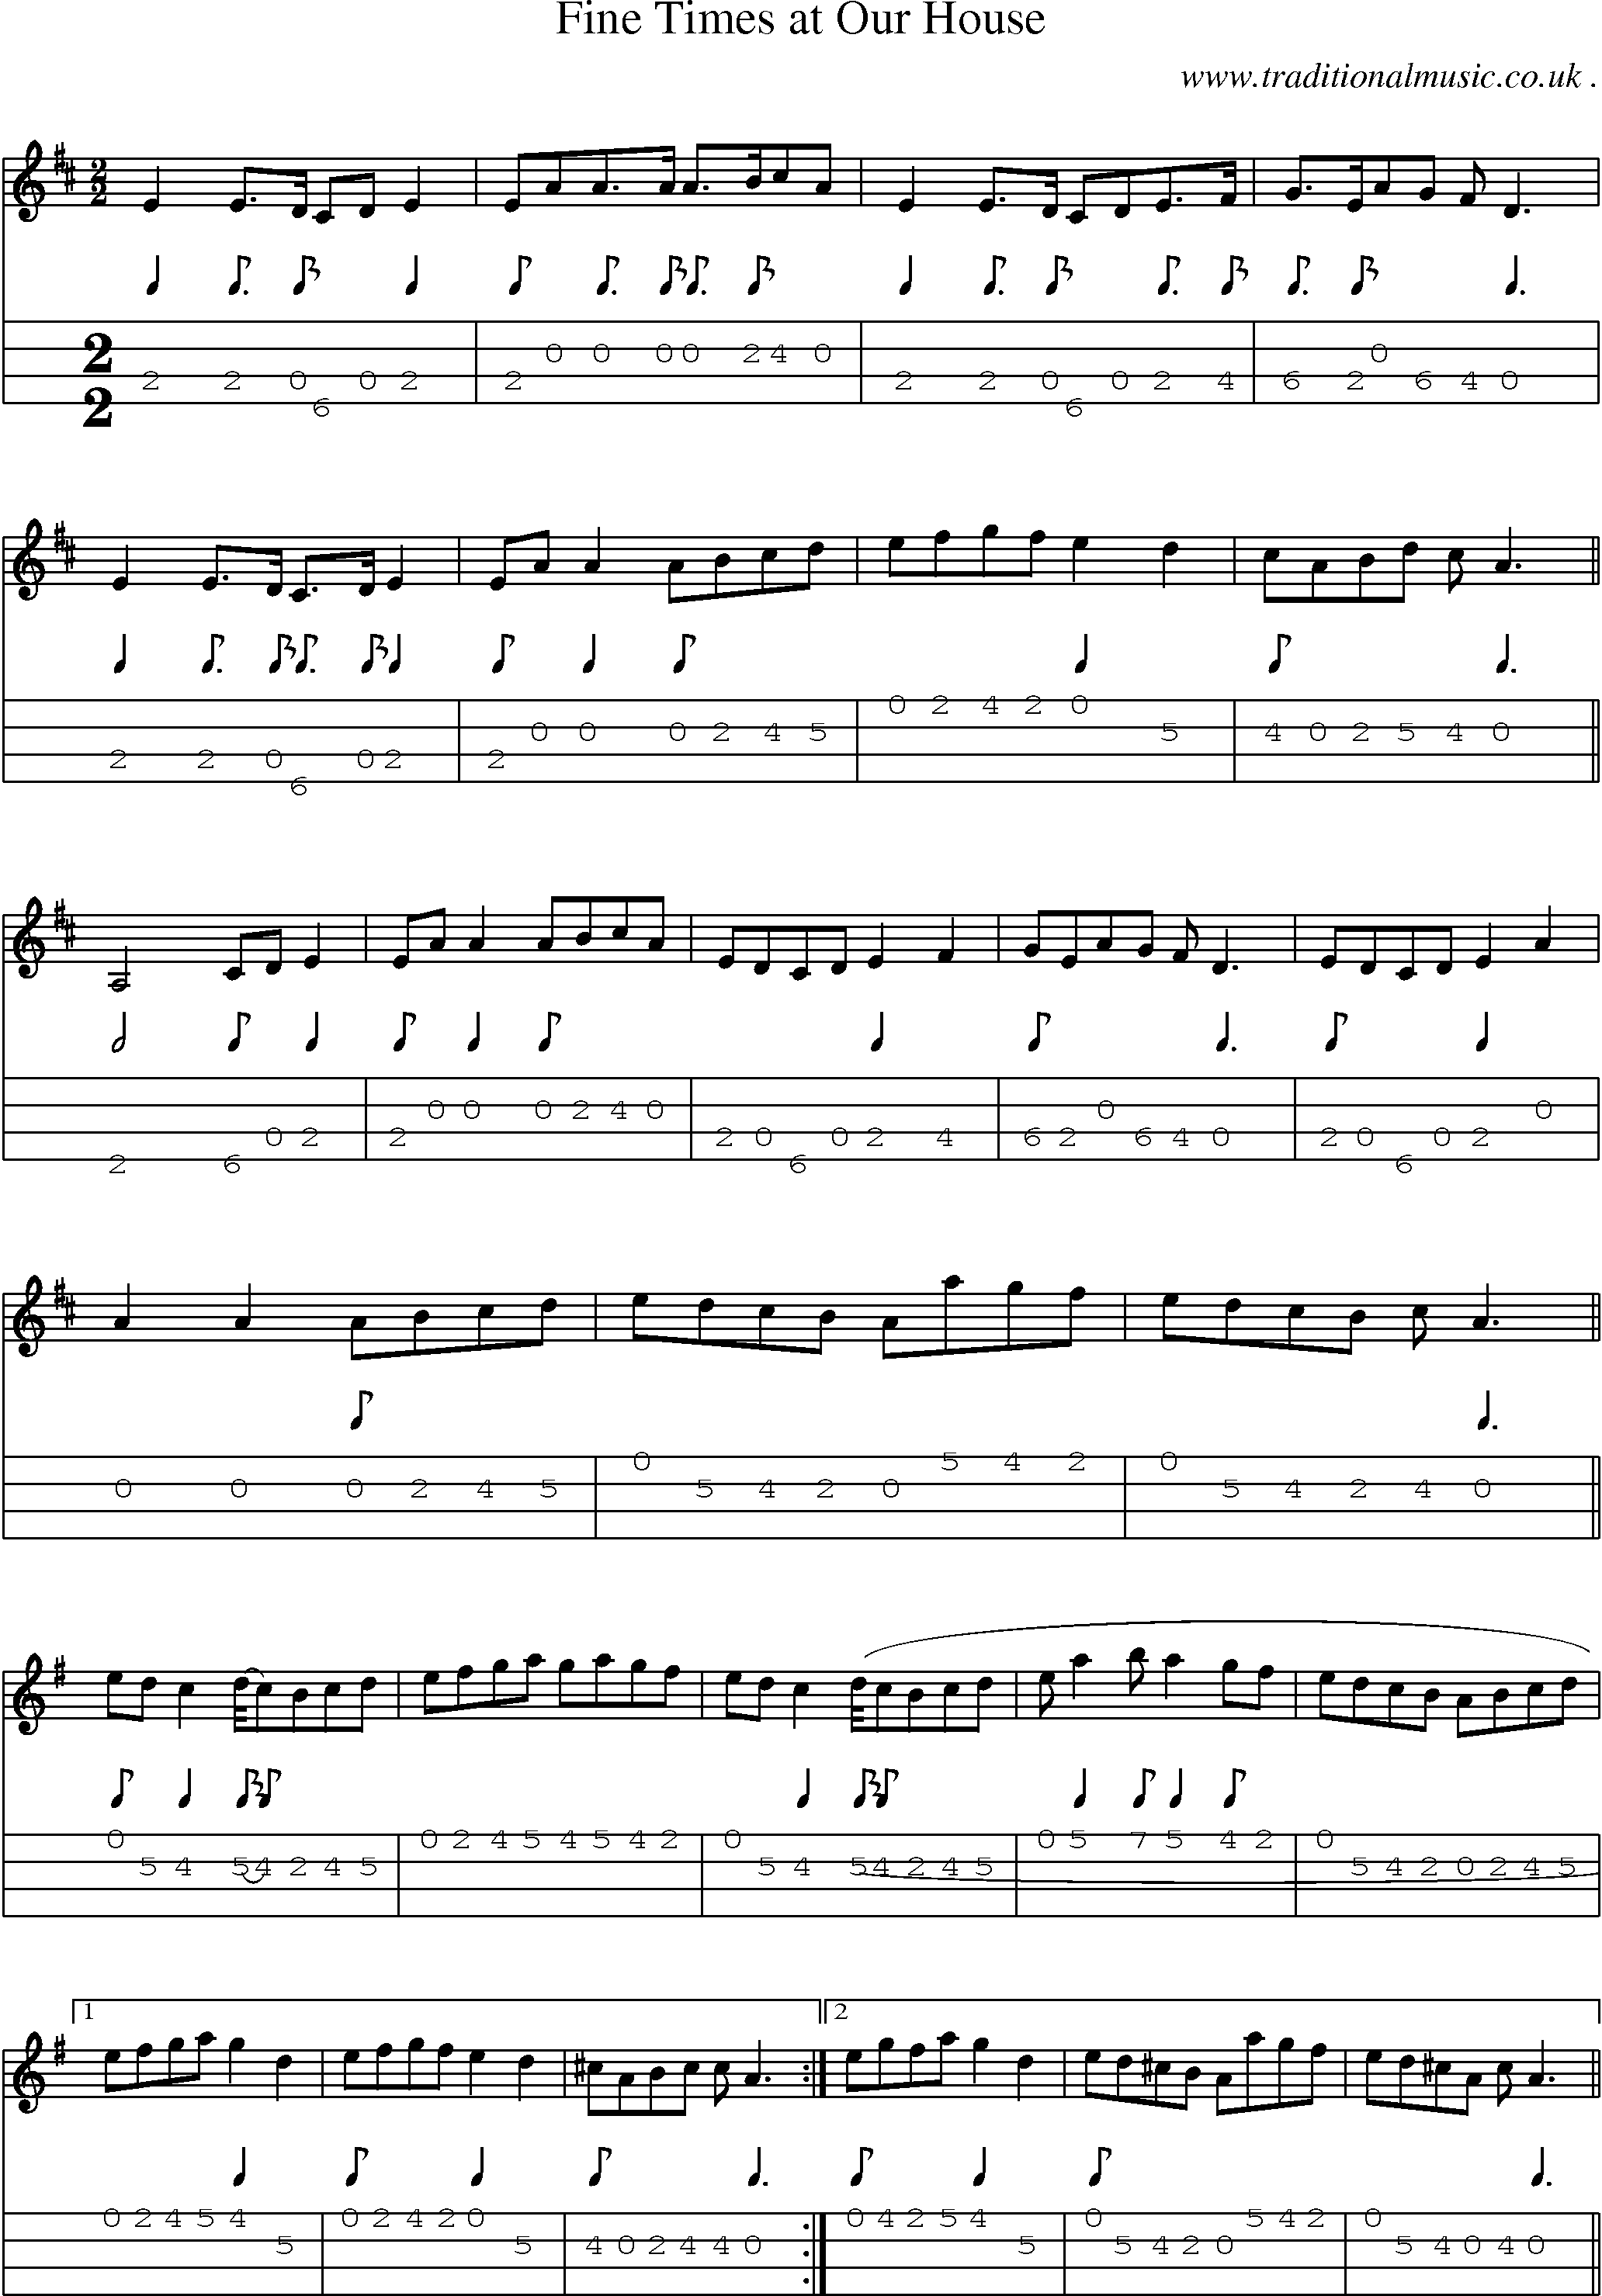 Our house chords - Music Score And Mandolin Tabs For Fine Times At Our House